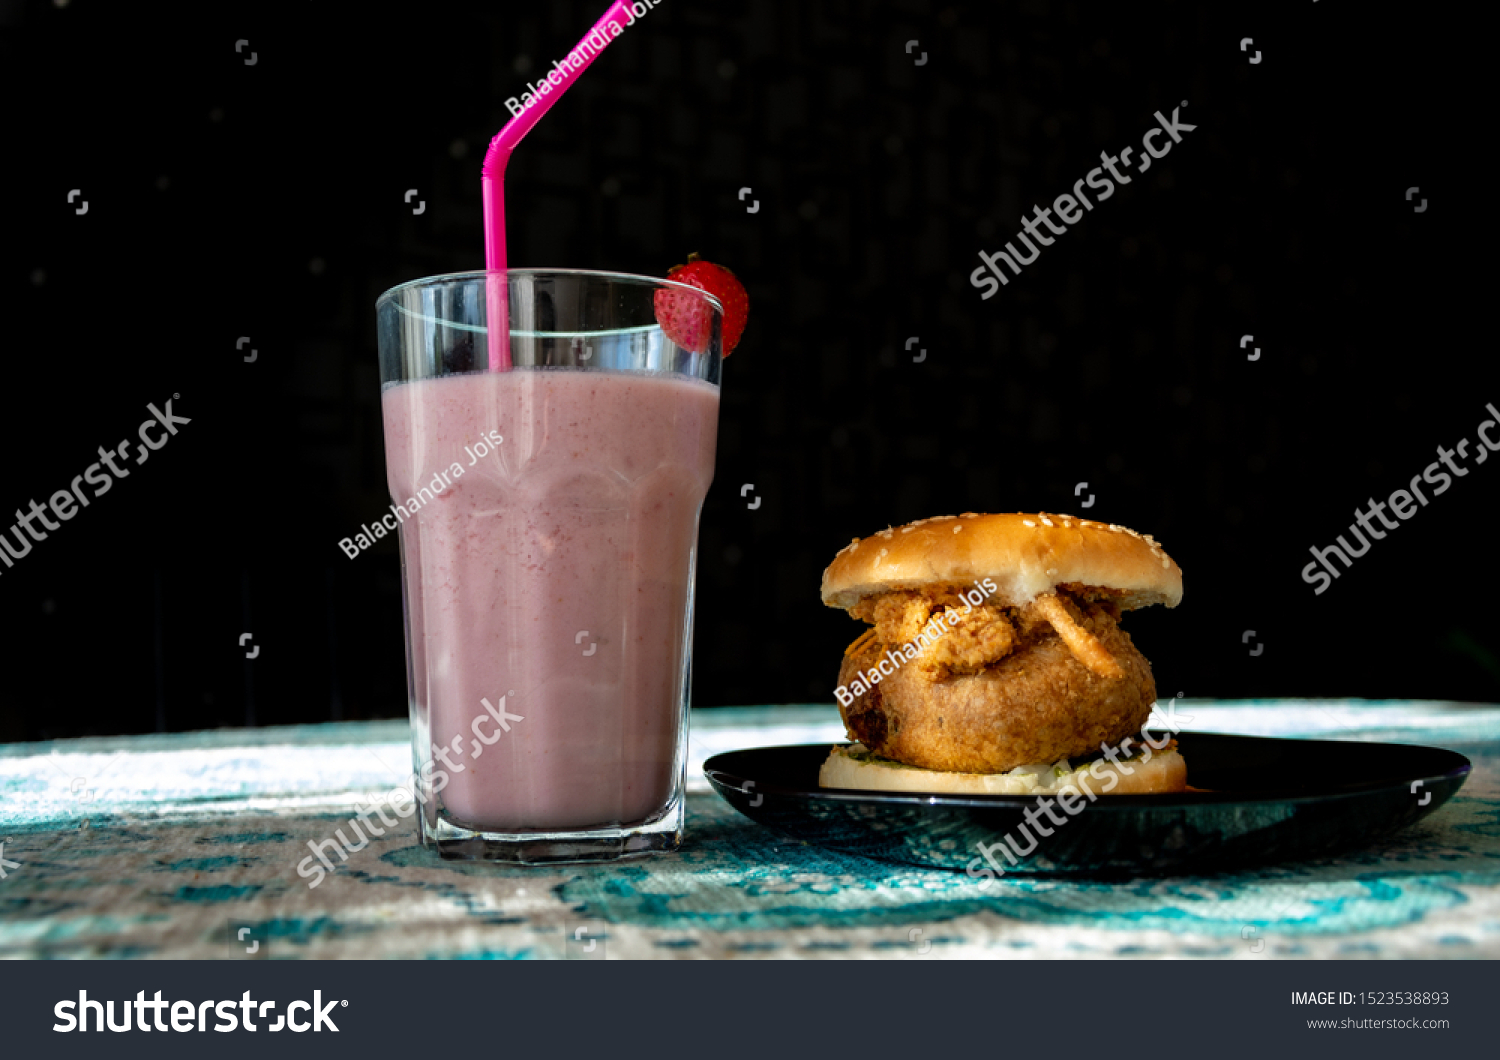 Wada pao and strawberry milkshake , traditional maharastrian pao #1523538893